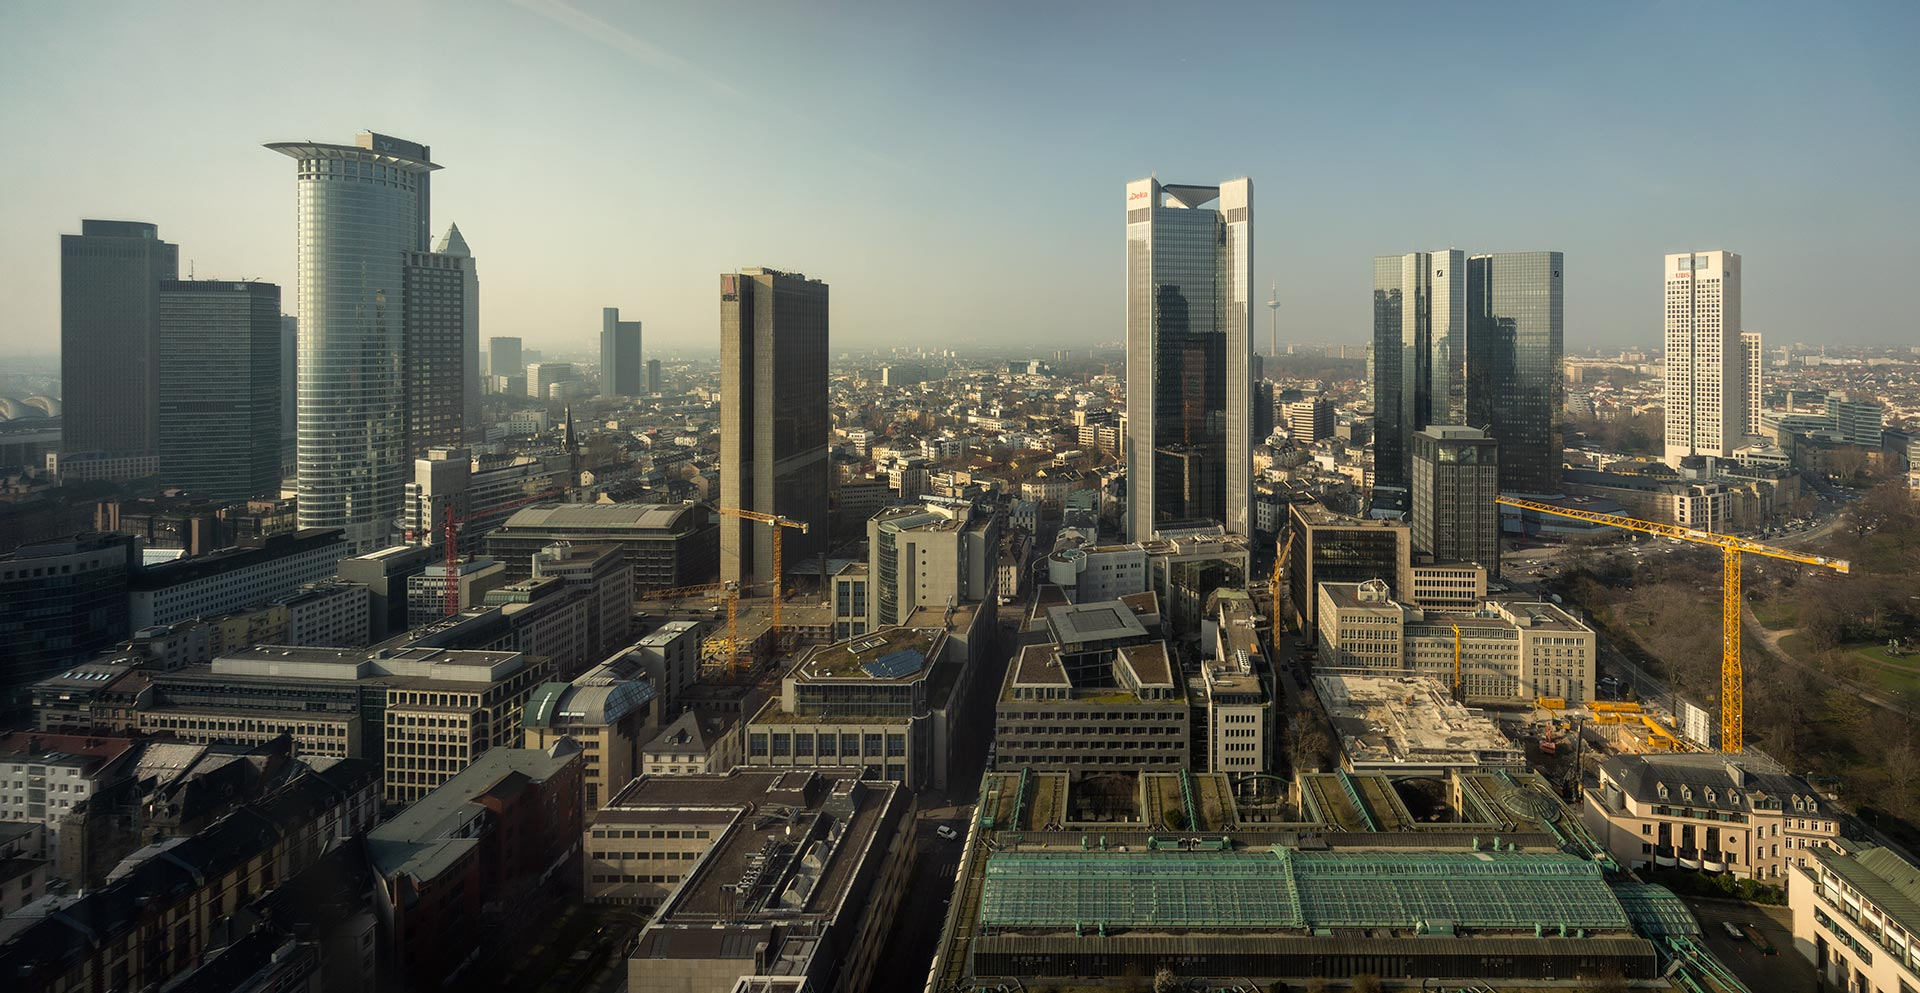 Skyline of Frankfurt am Main on a sunny day in March 2014 | PanoTwins